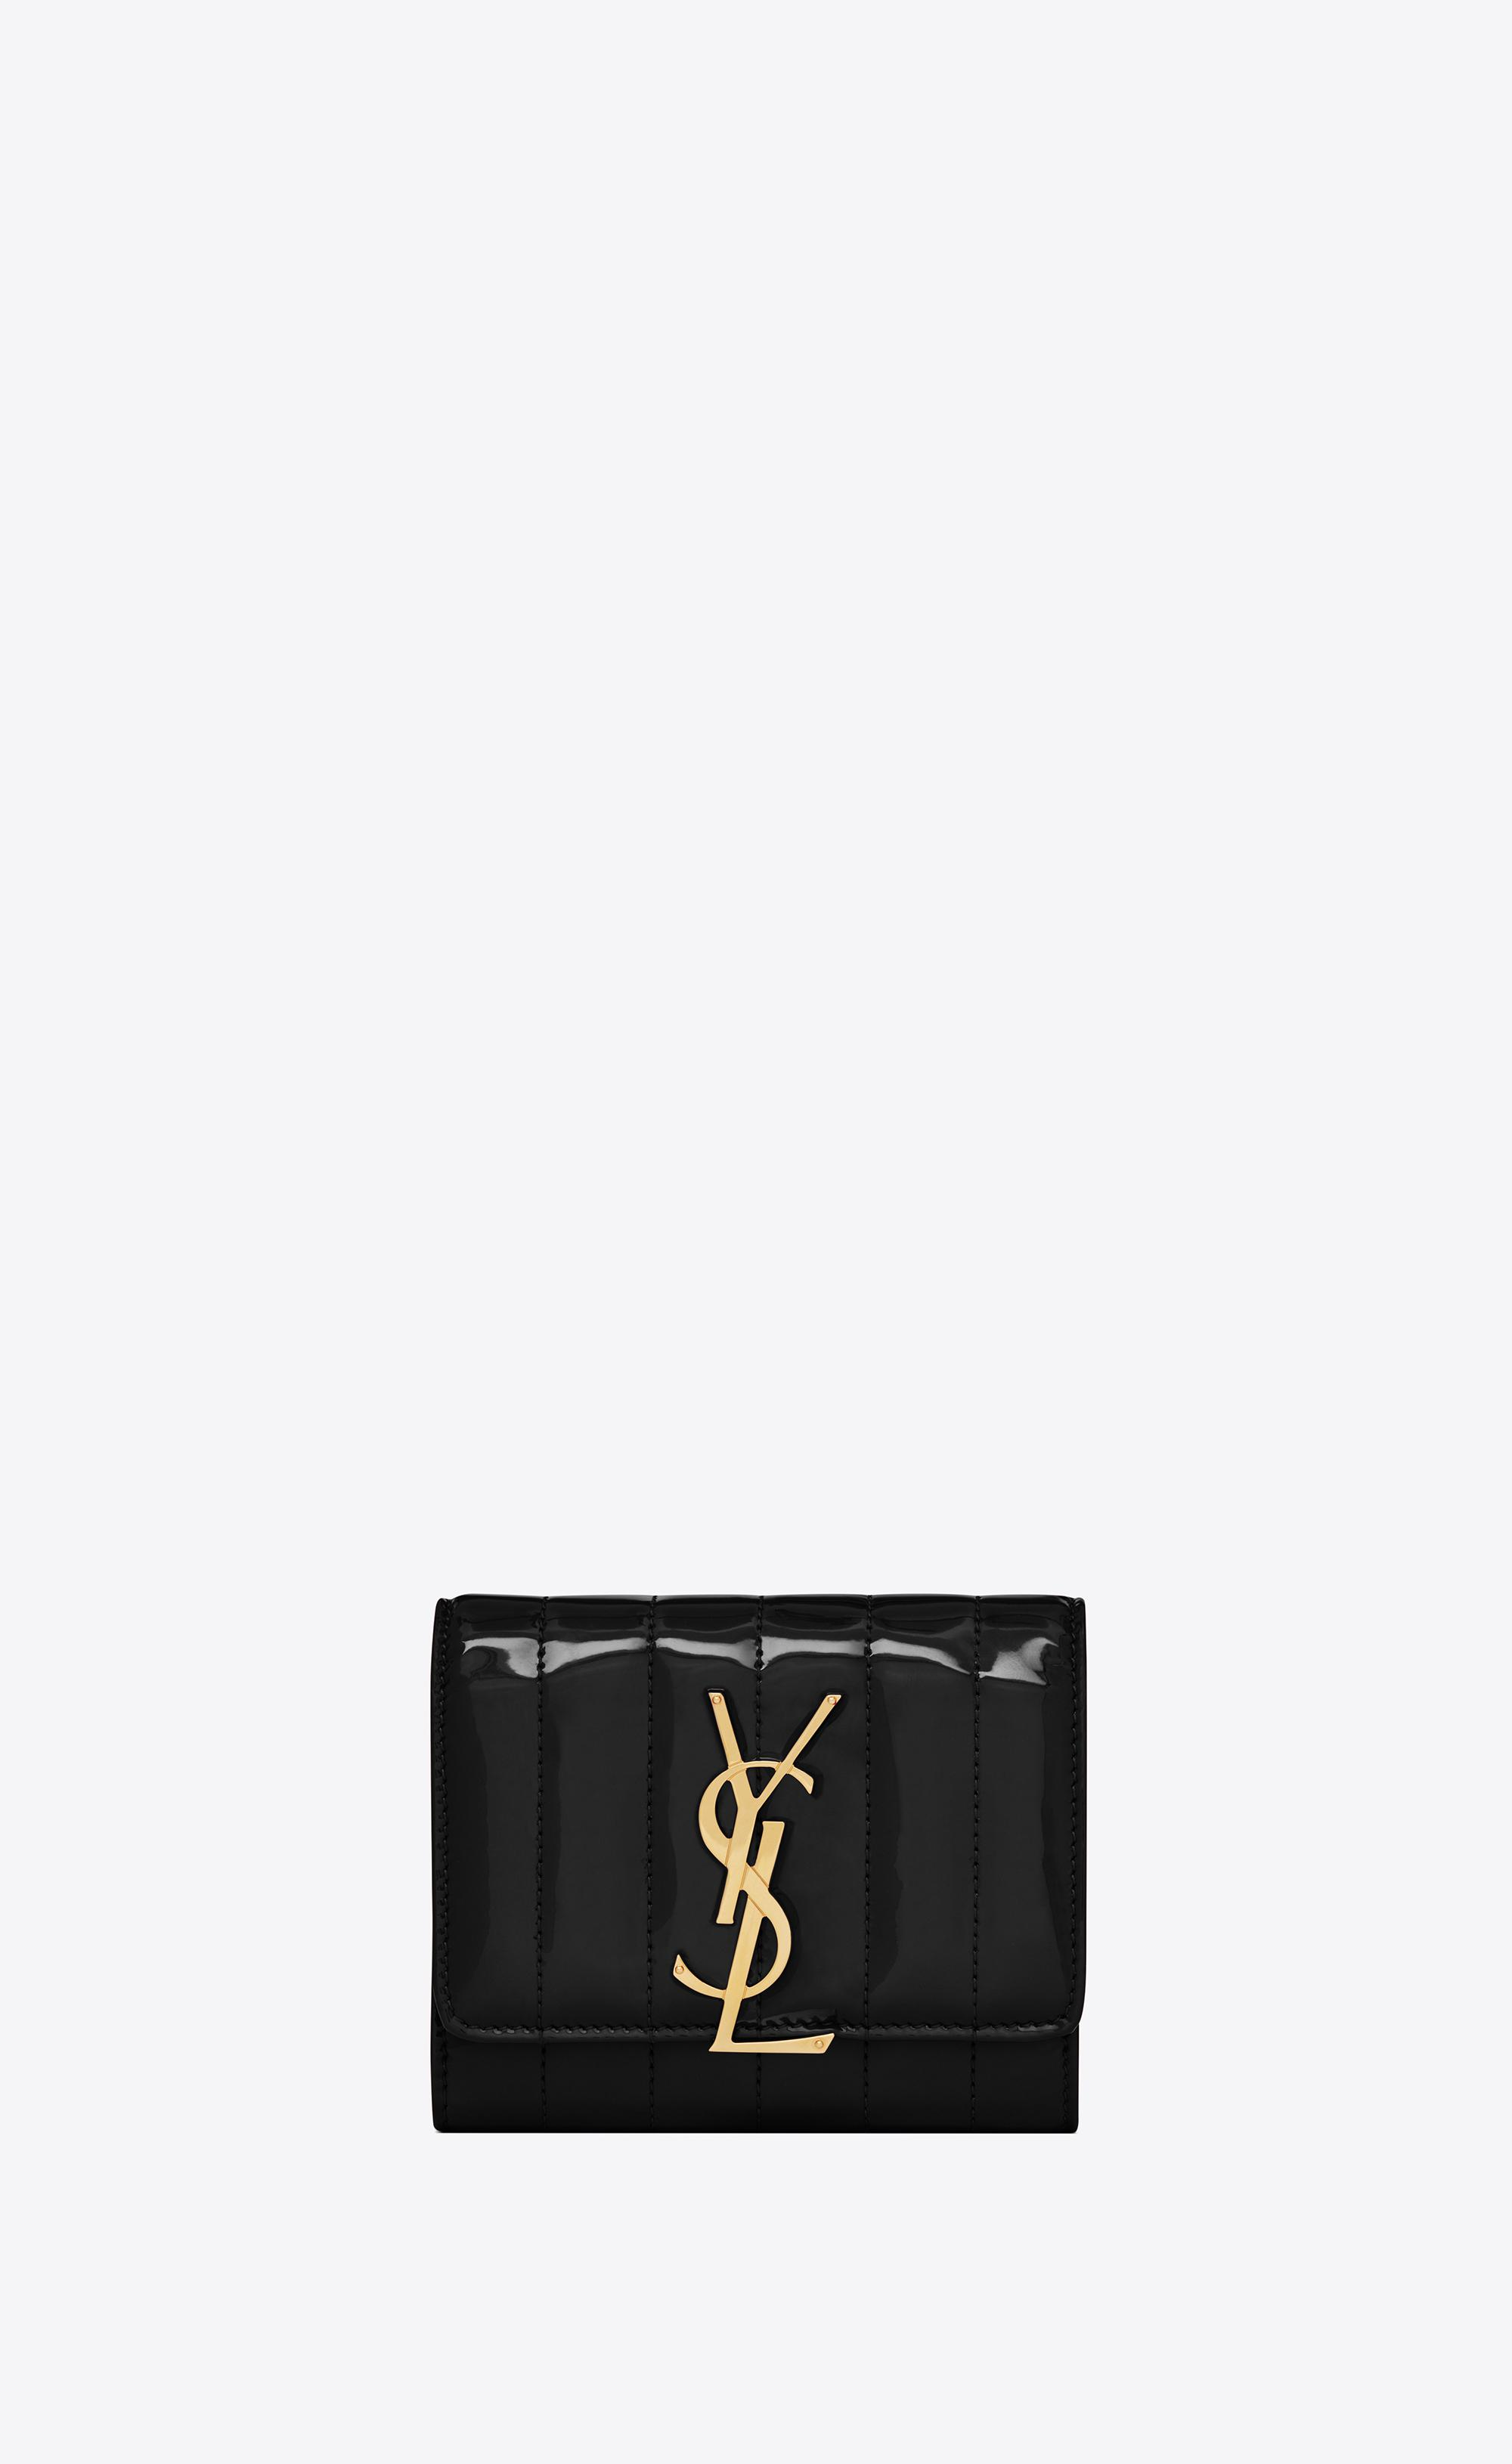 cdea038c606a Lyst - Saint Laurent Vicky Compact Tri-fold Wallet in Black - Save 23%